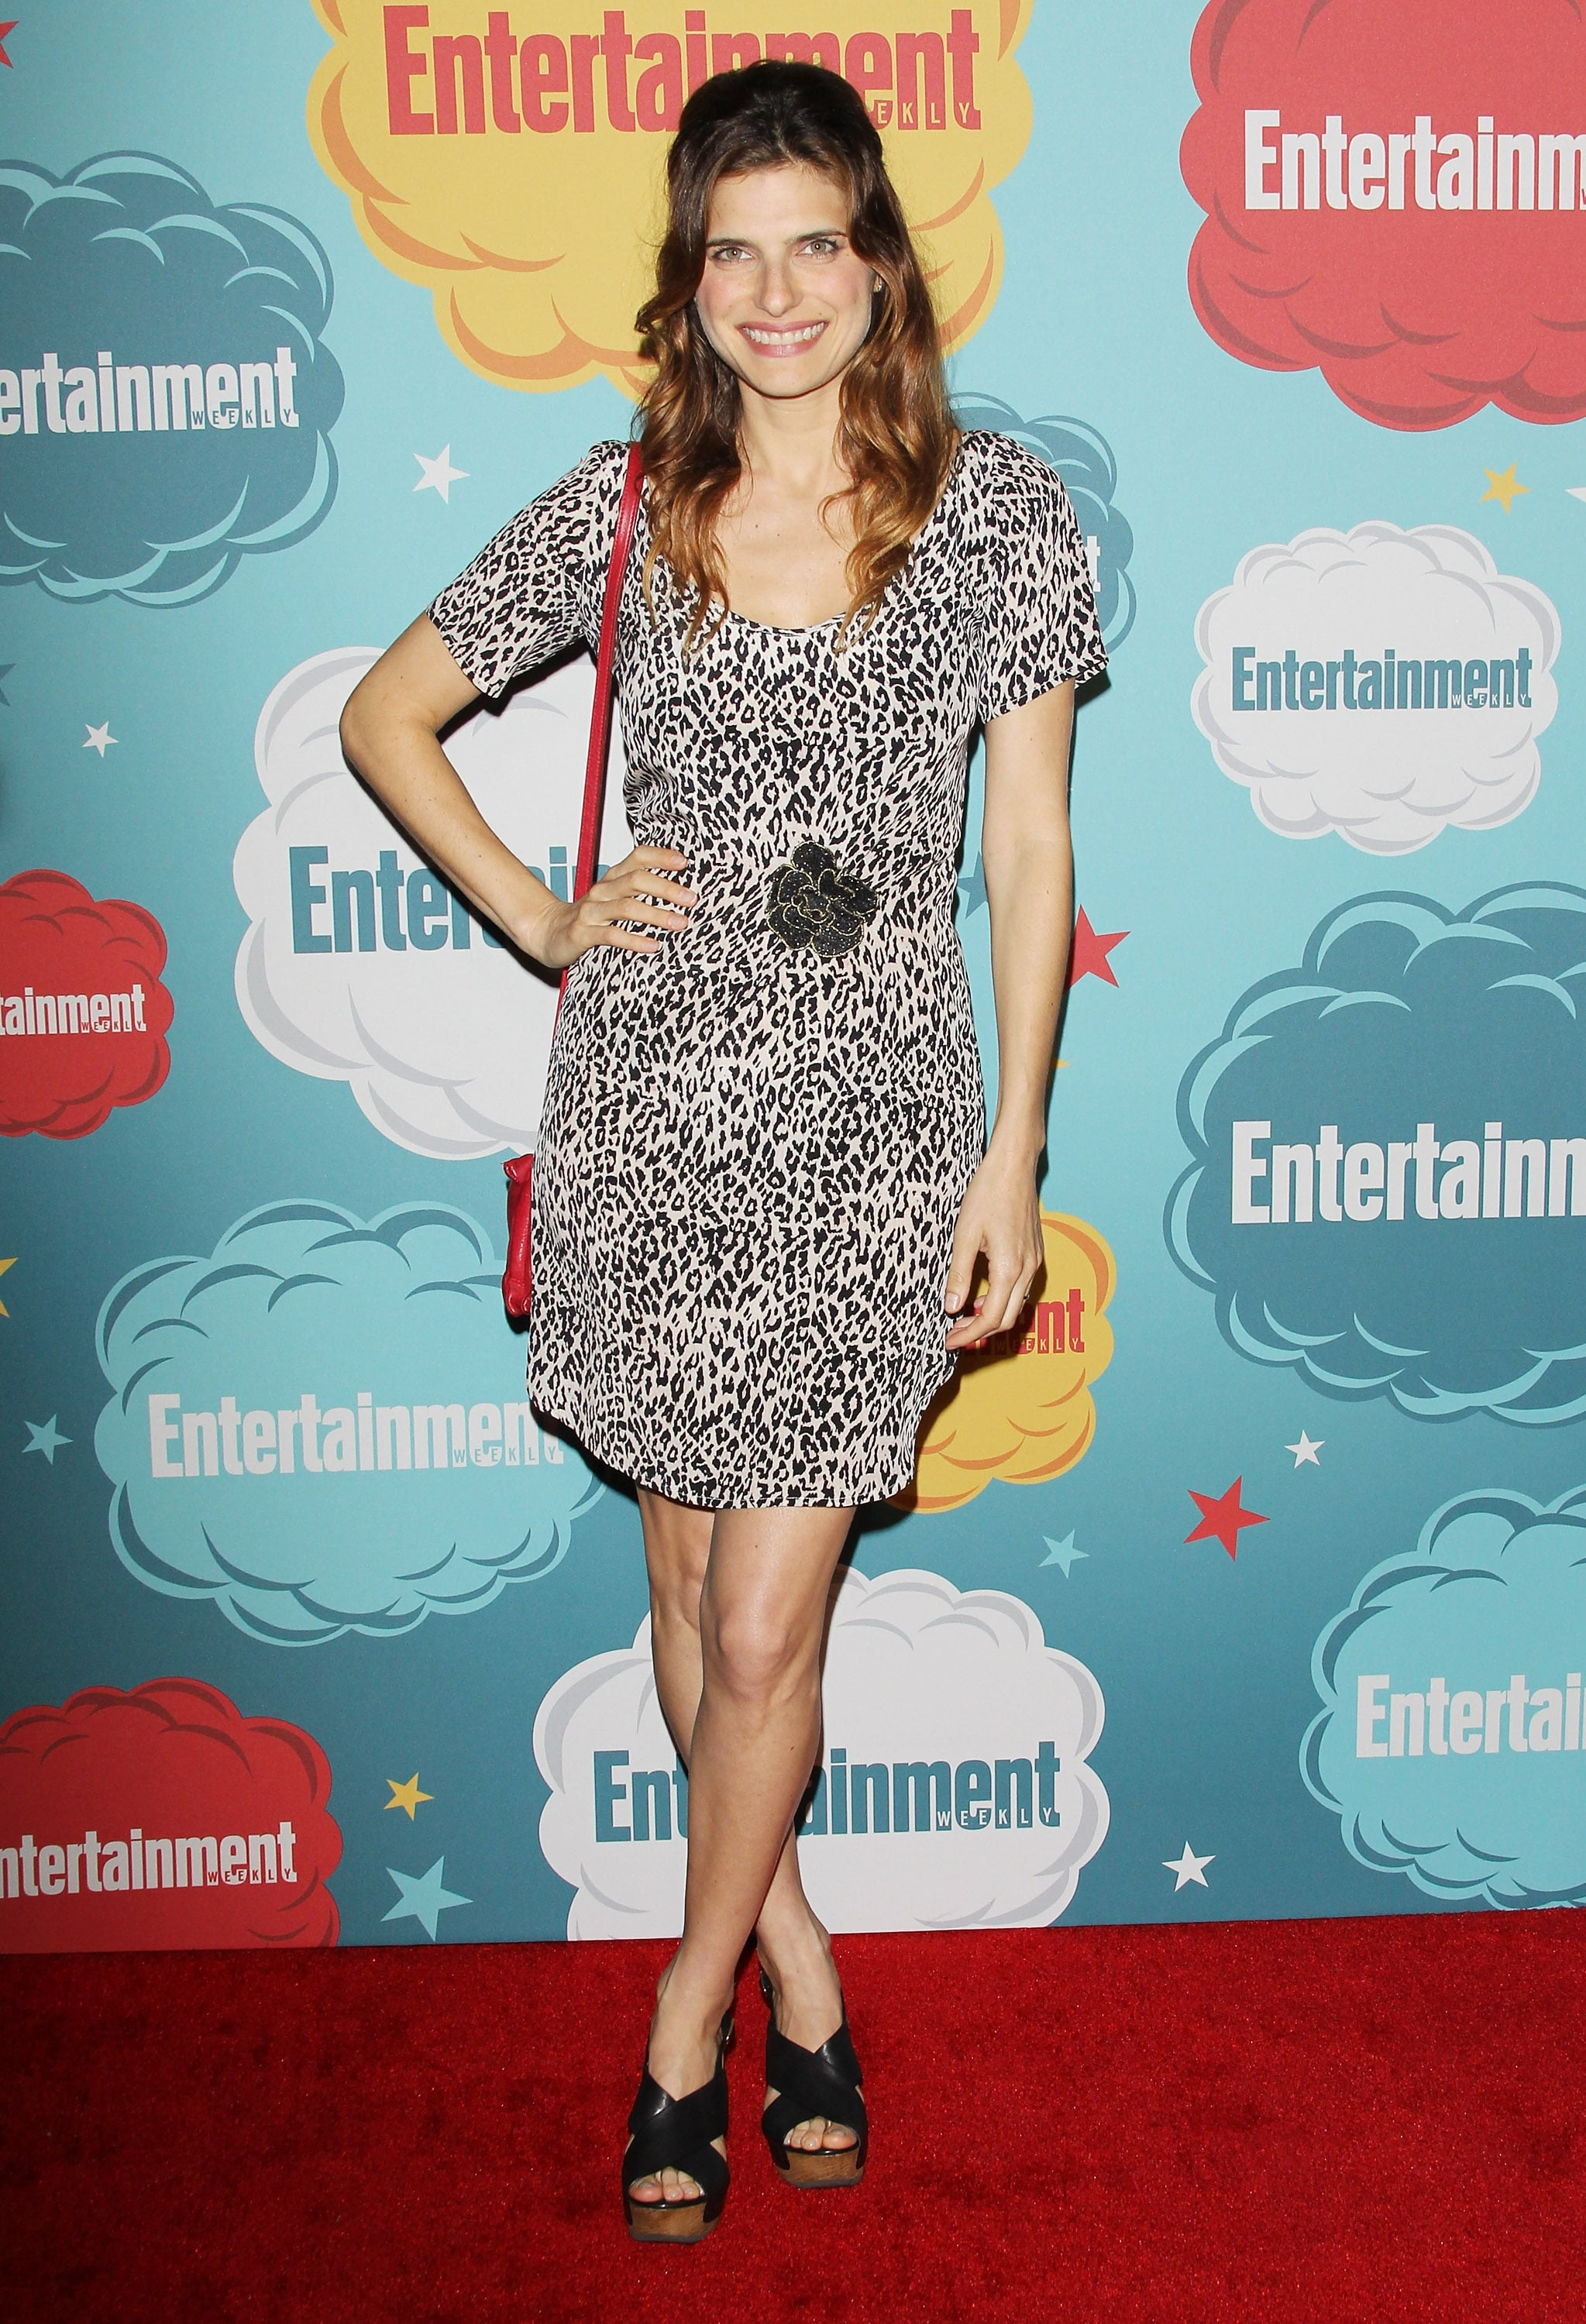 Lake Bell paired a printed dress with a red bag and black sandals at Entertainment Weekly's annual Comic-Con party.